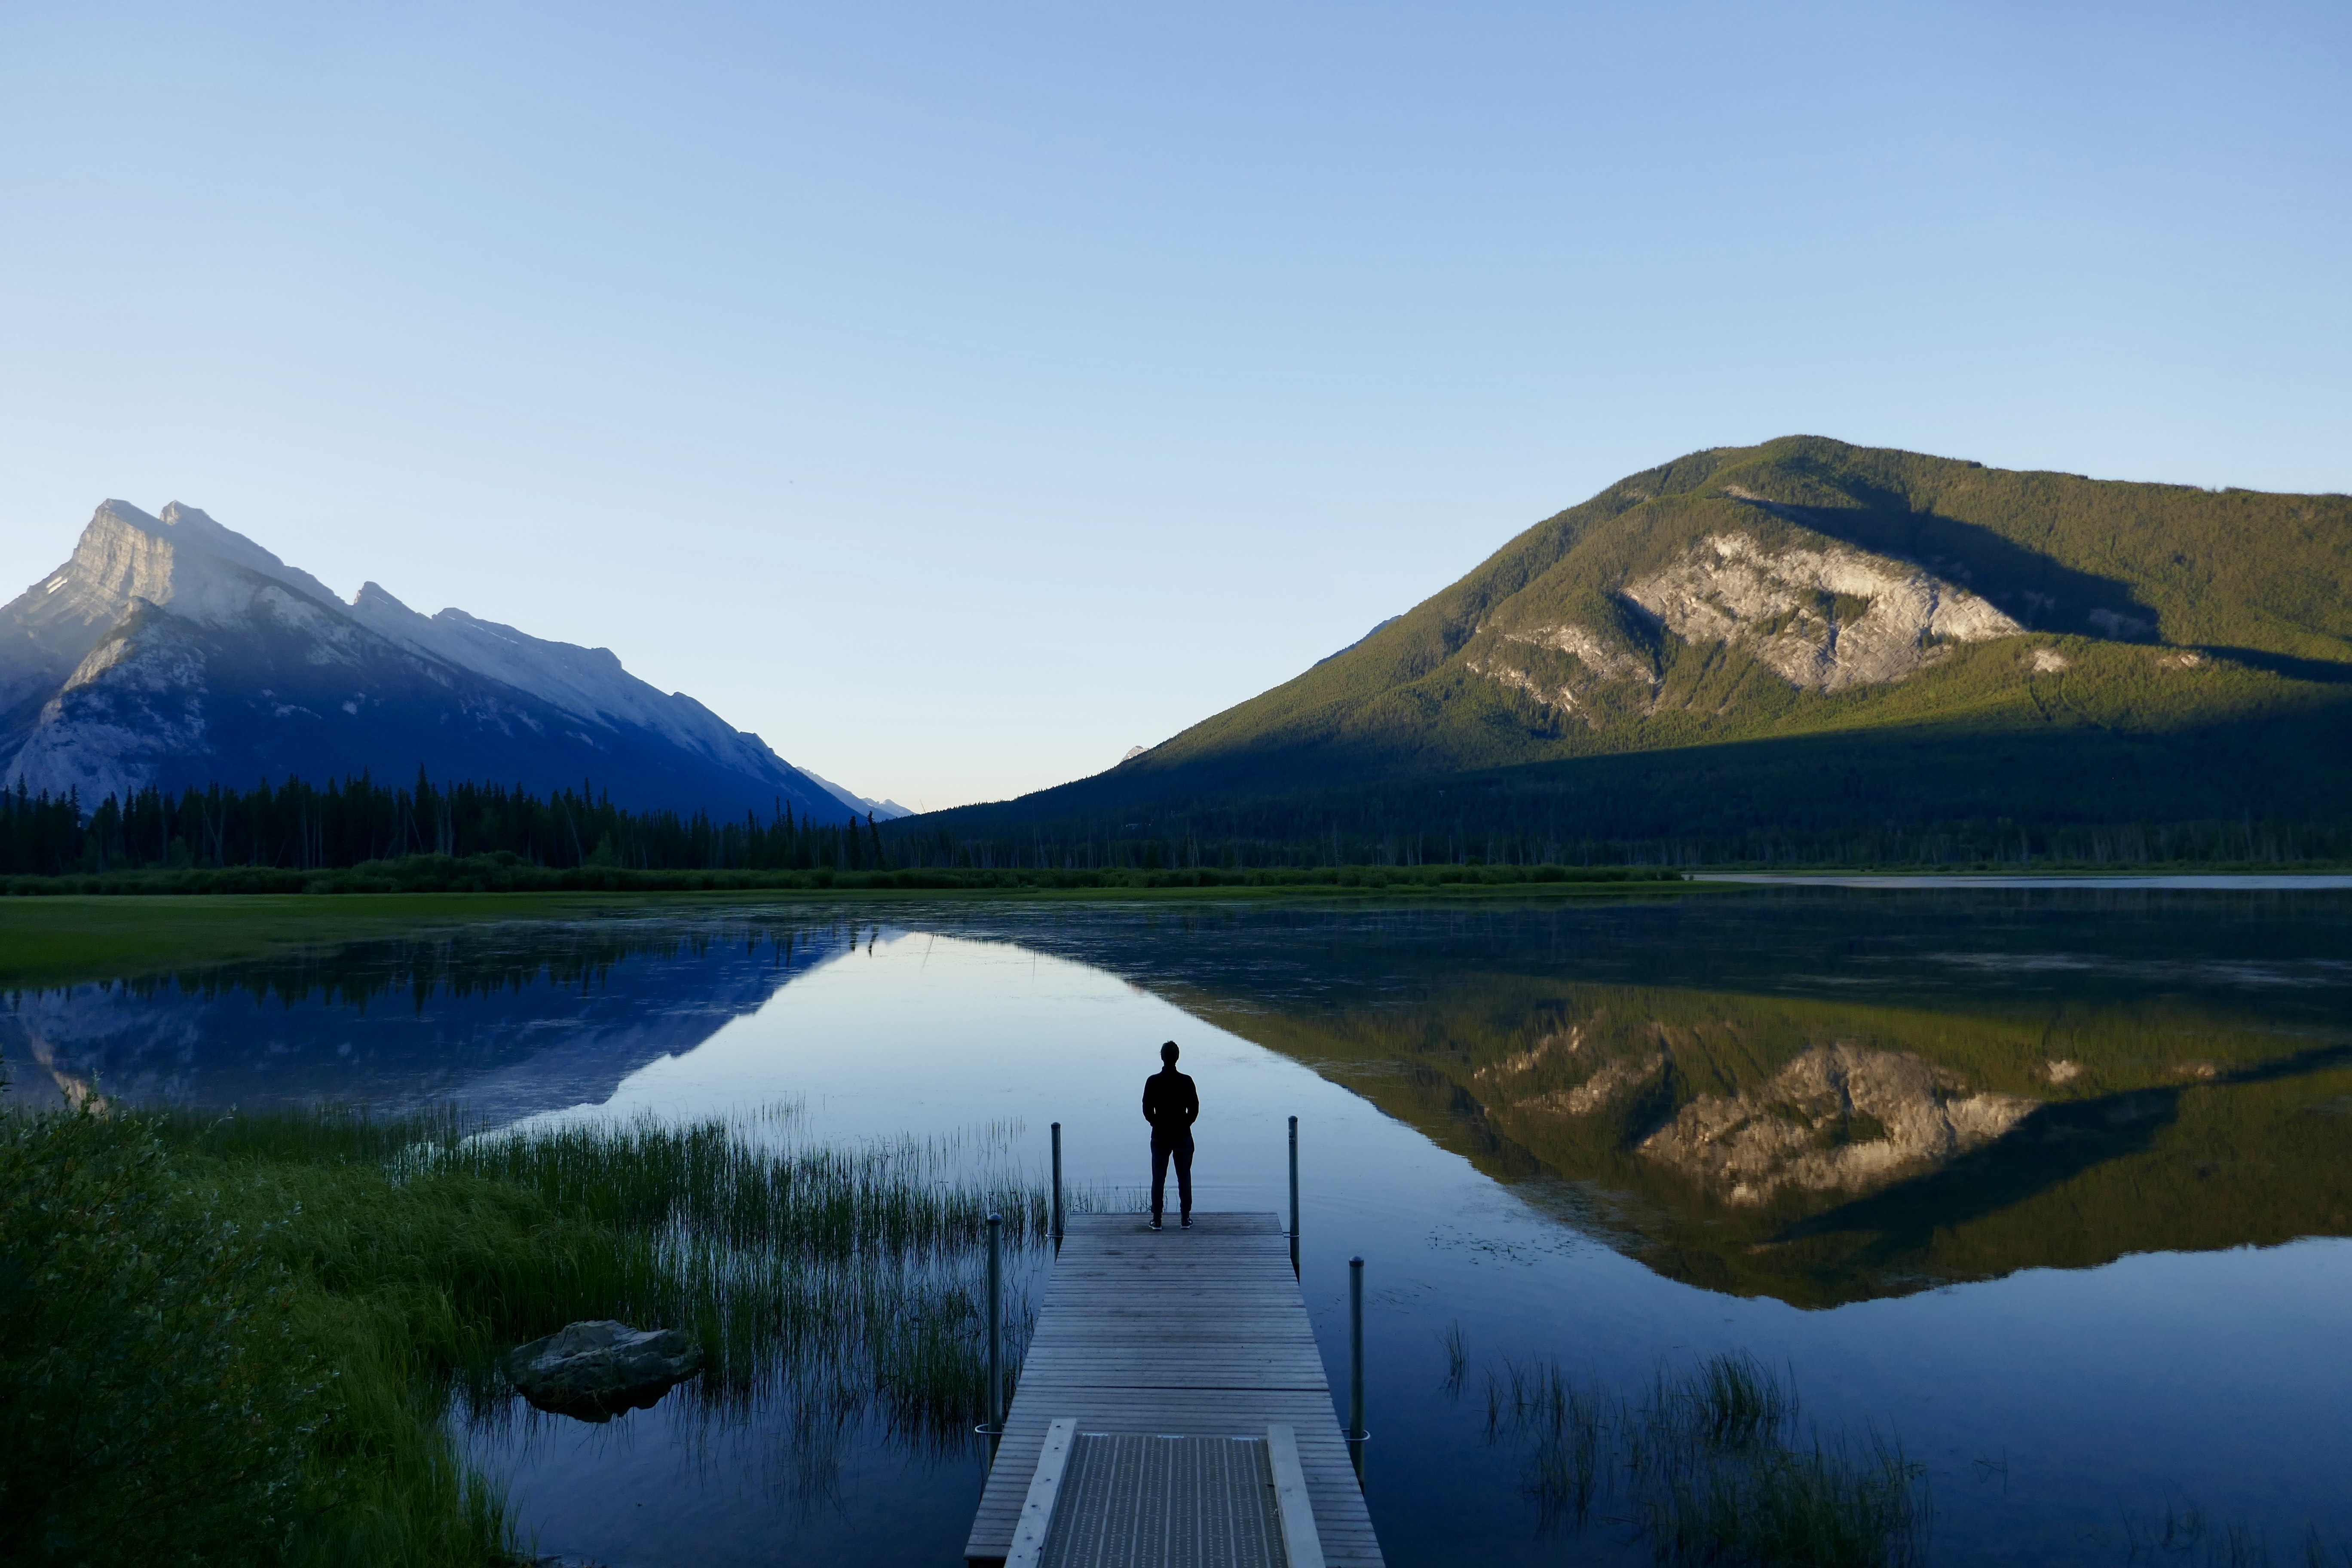 man standing on dock facing body of water and mountains during daytime